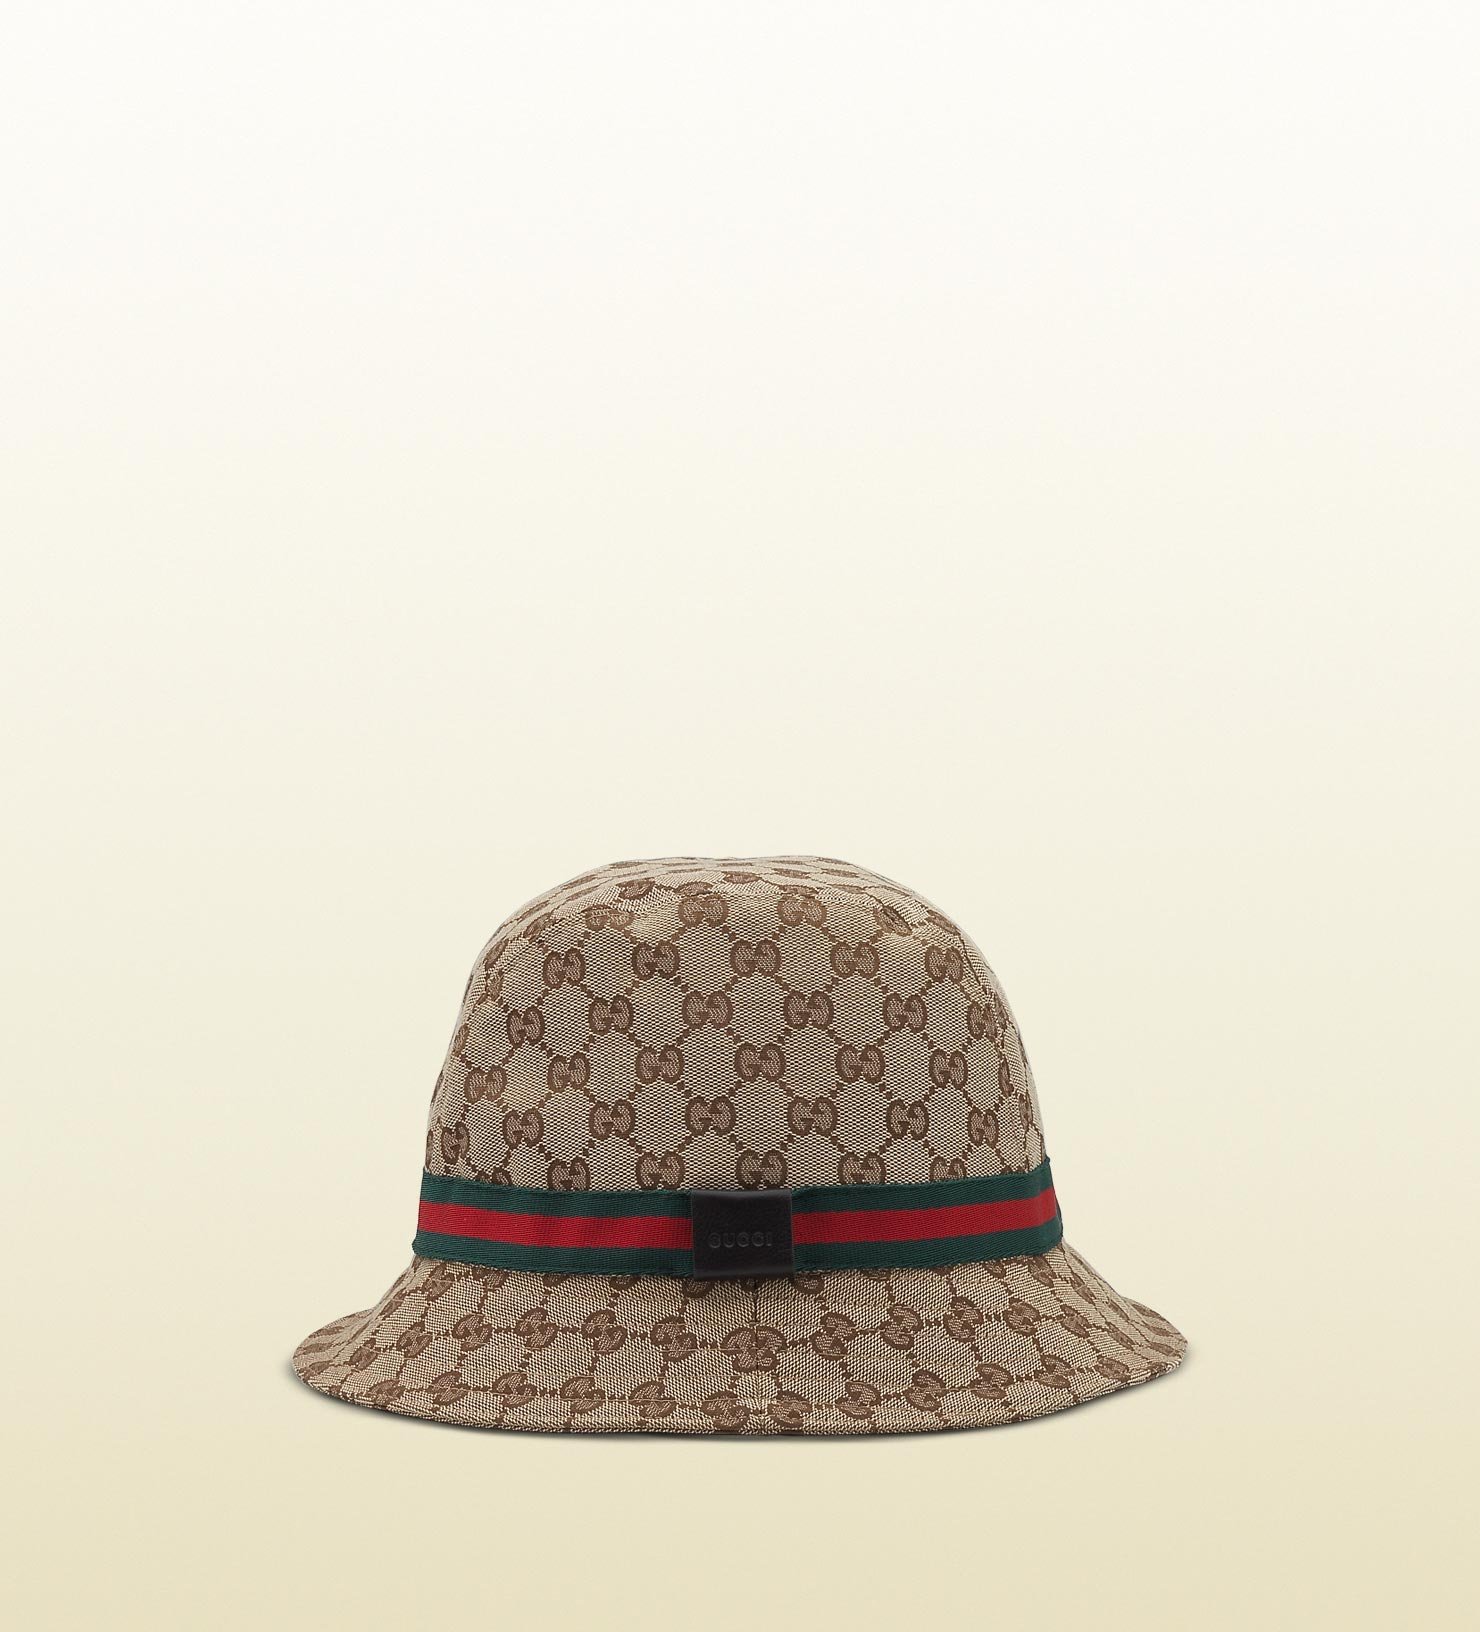 Gucci Hats For Men: Gucci Original Gg Canvas Fedora With Web In Natural For